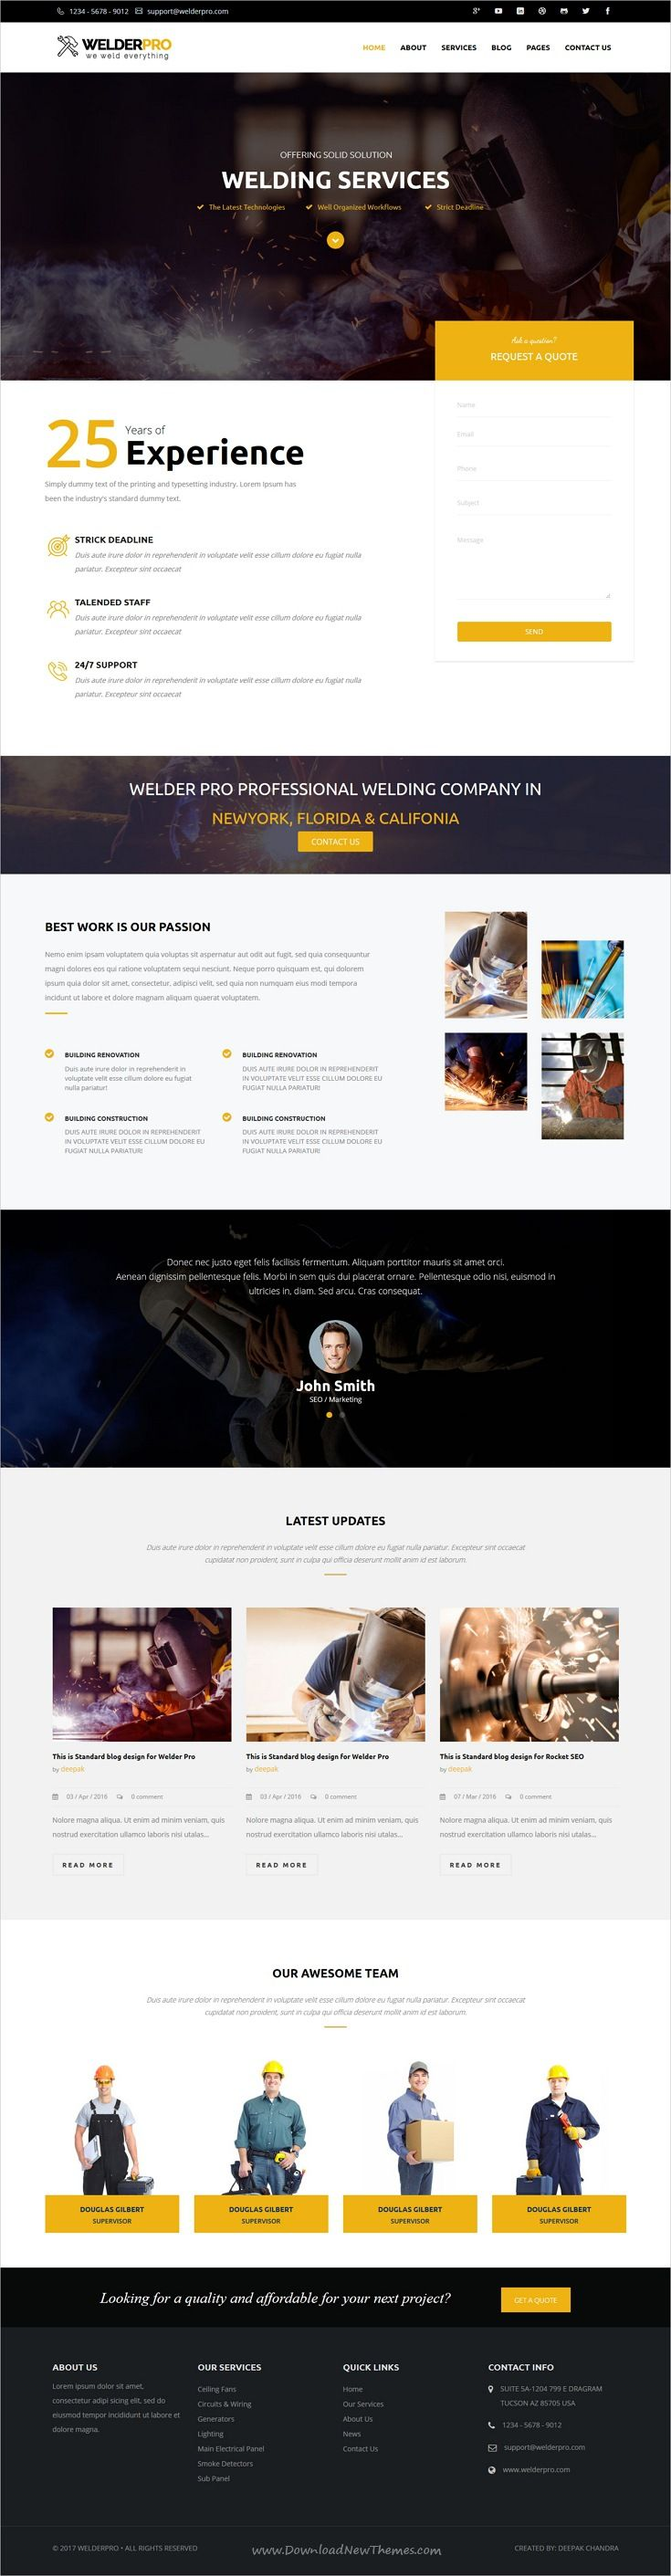 Welder Pro is clean and modern design responsive #WordPress theme for #welding services companies website download now..